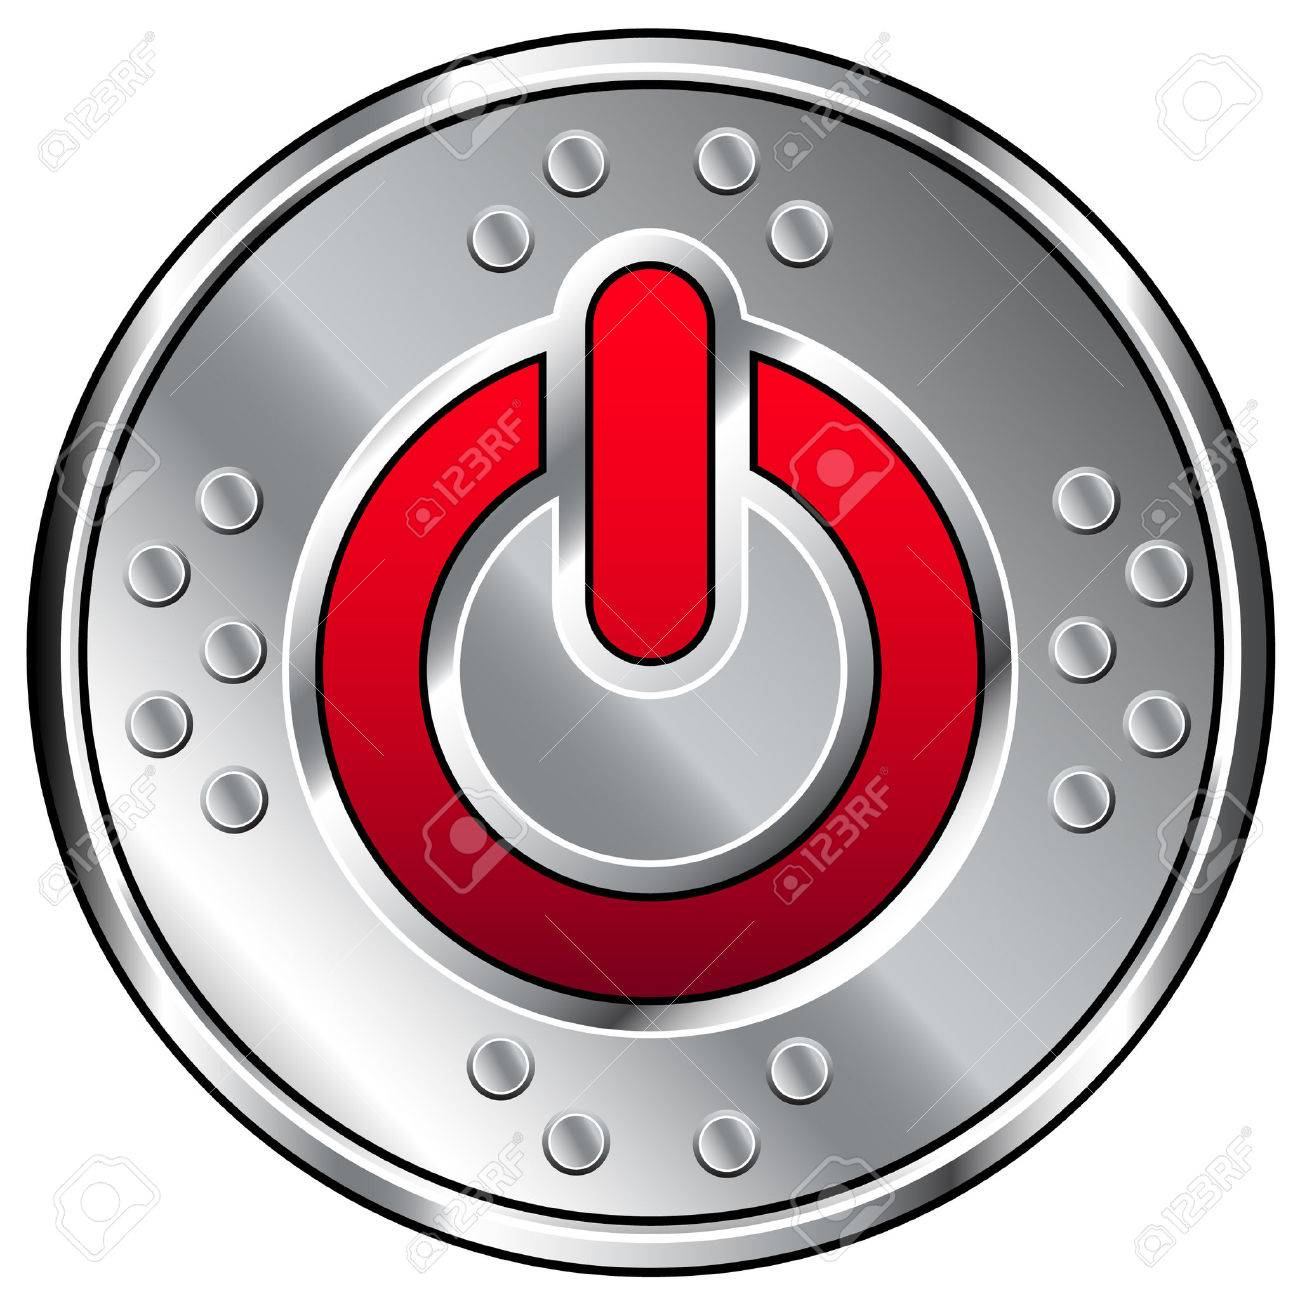 Vector illustration of shiny industrial button with red computer power icon Stock Vector - 4695186